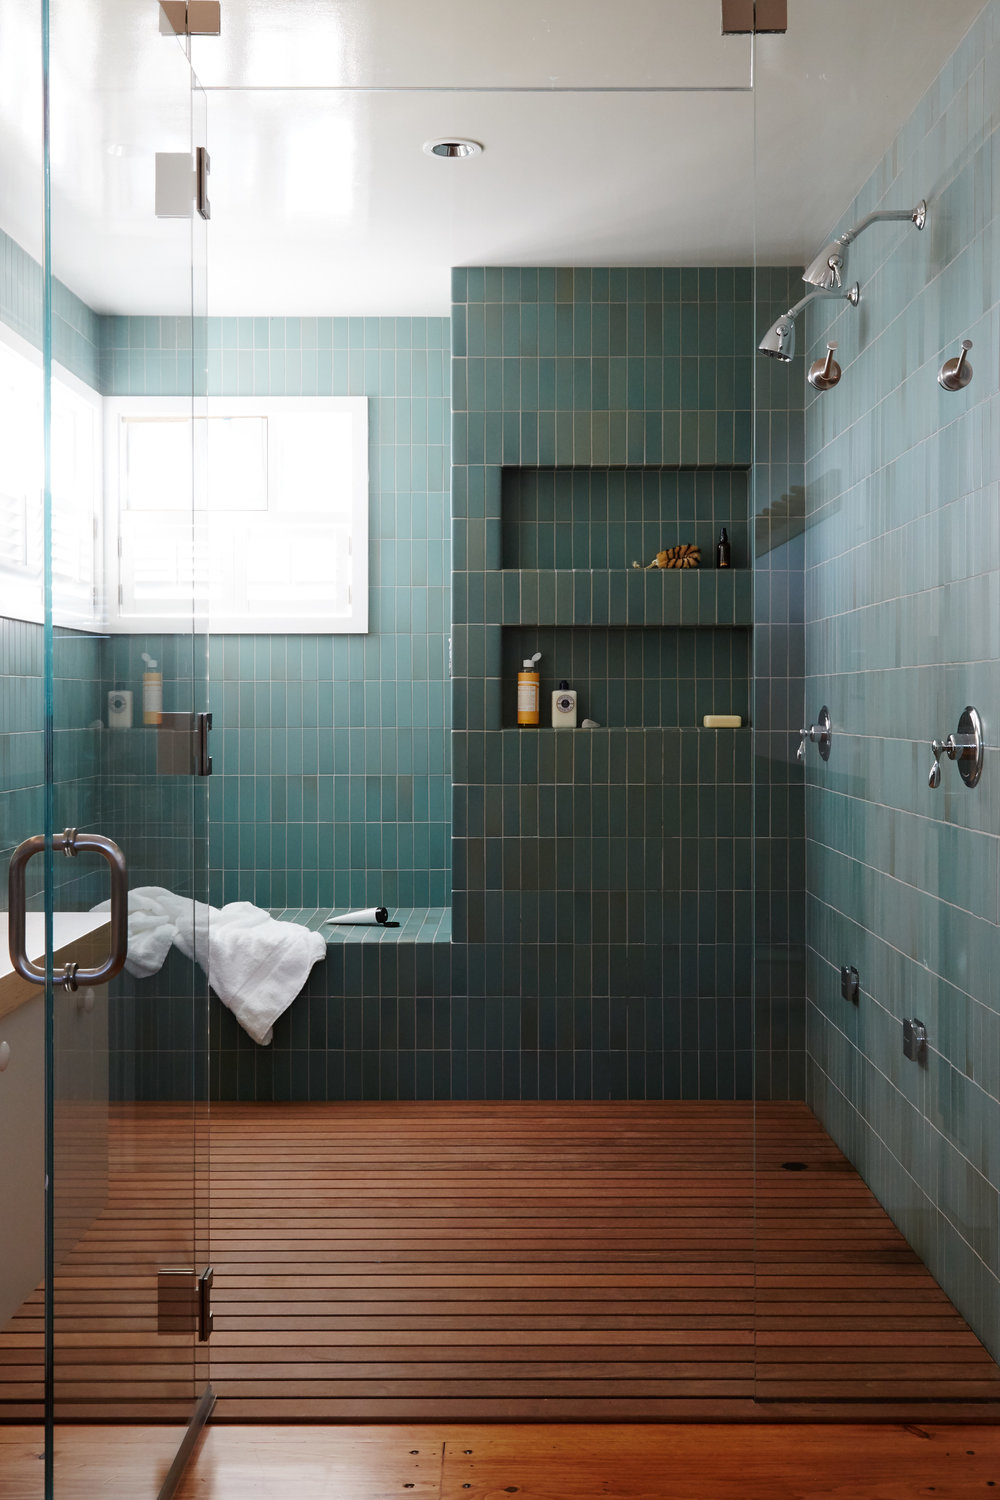 Heath Tile Specified for Steam Shower